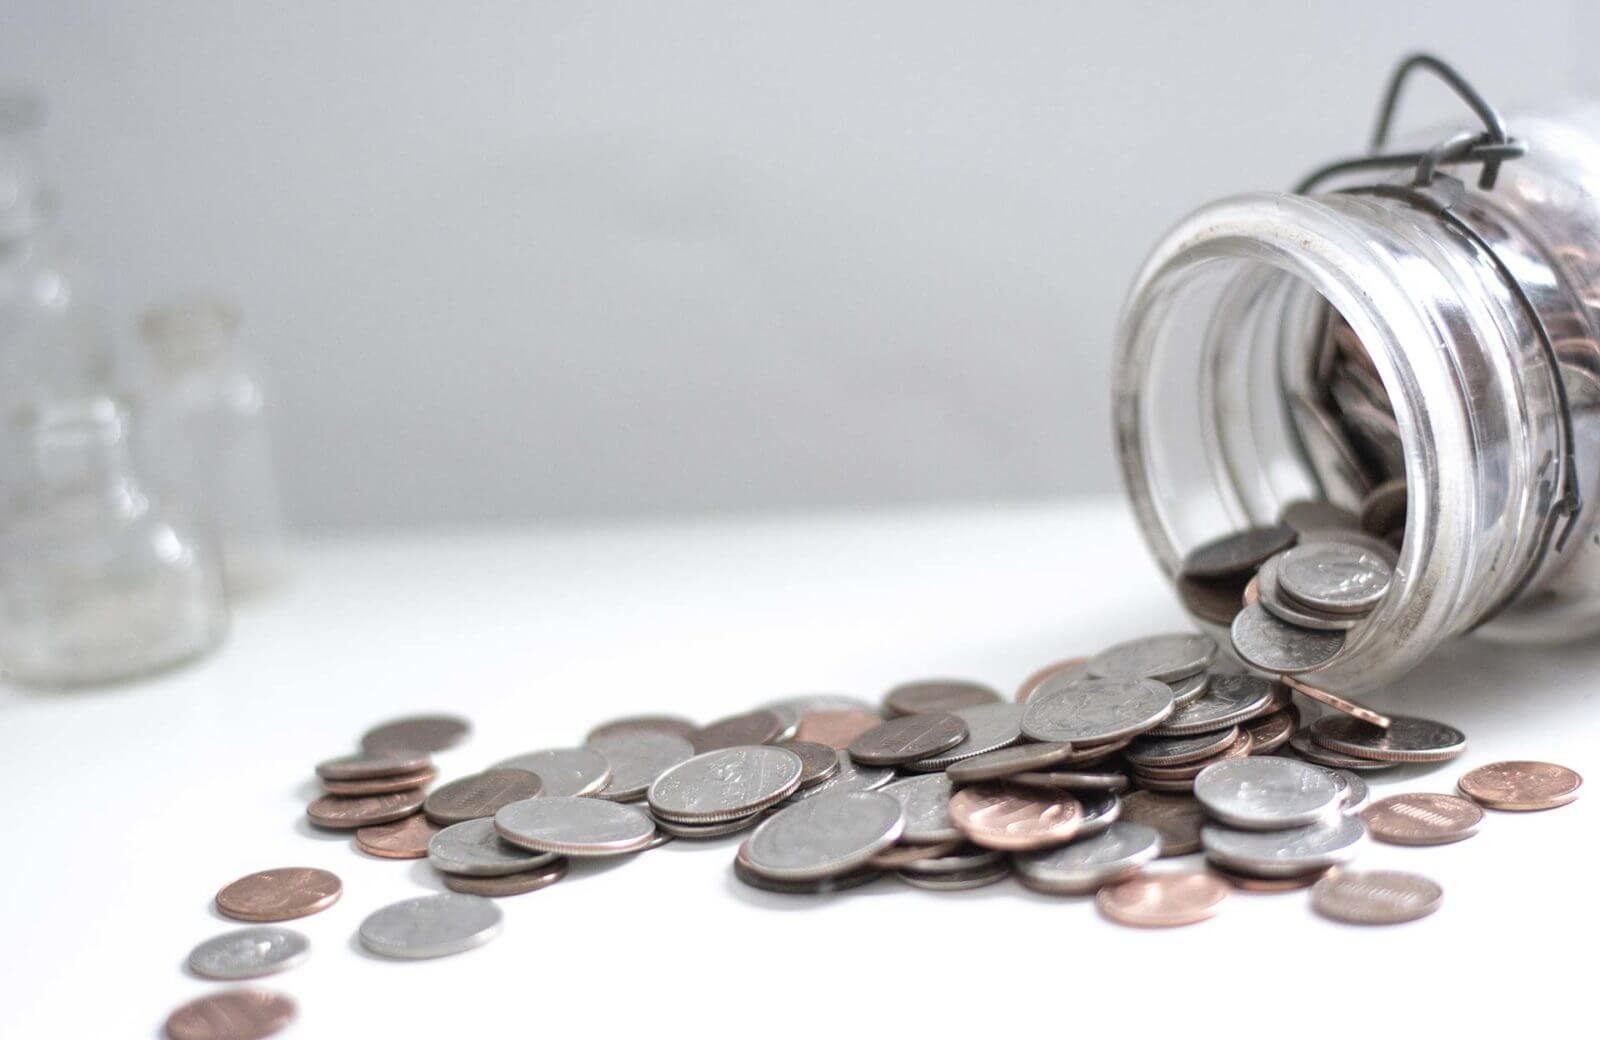 Coins Coming From Jar